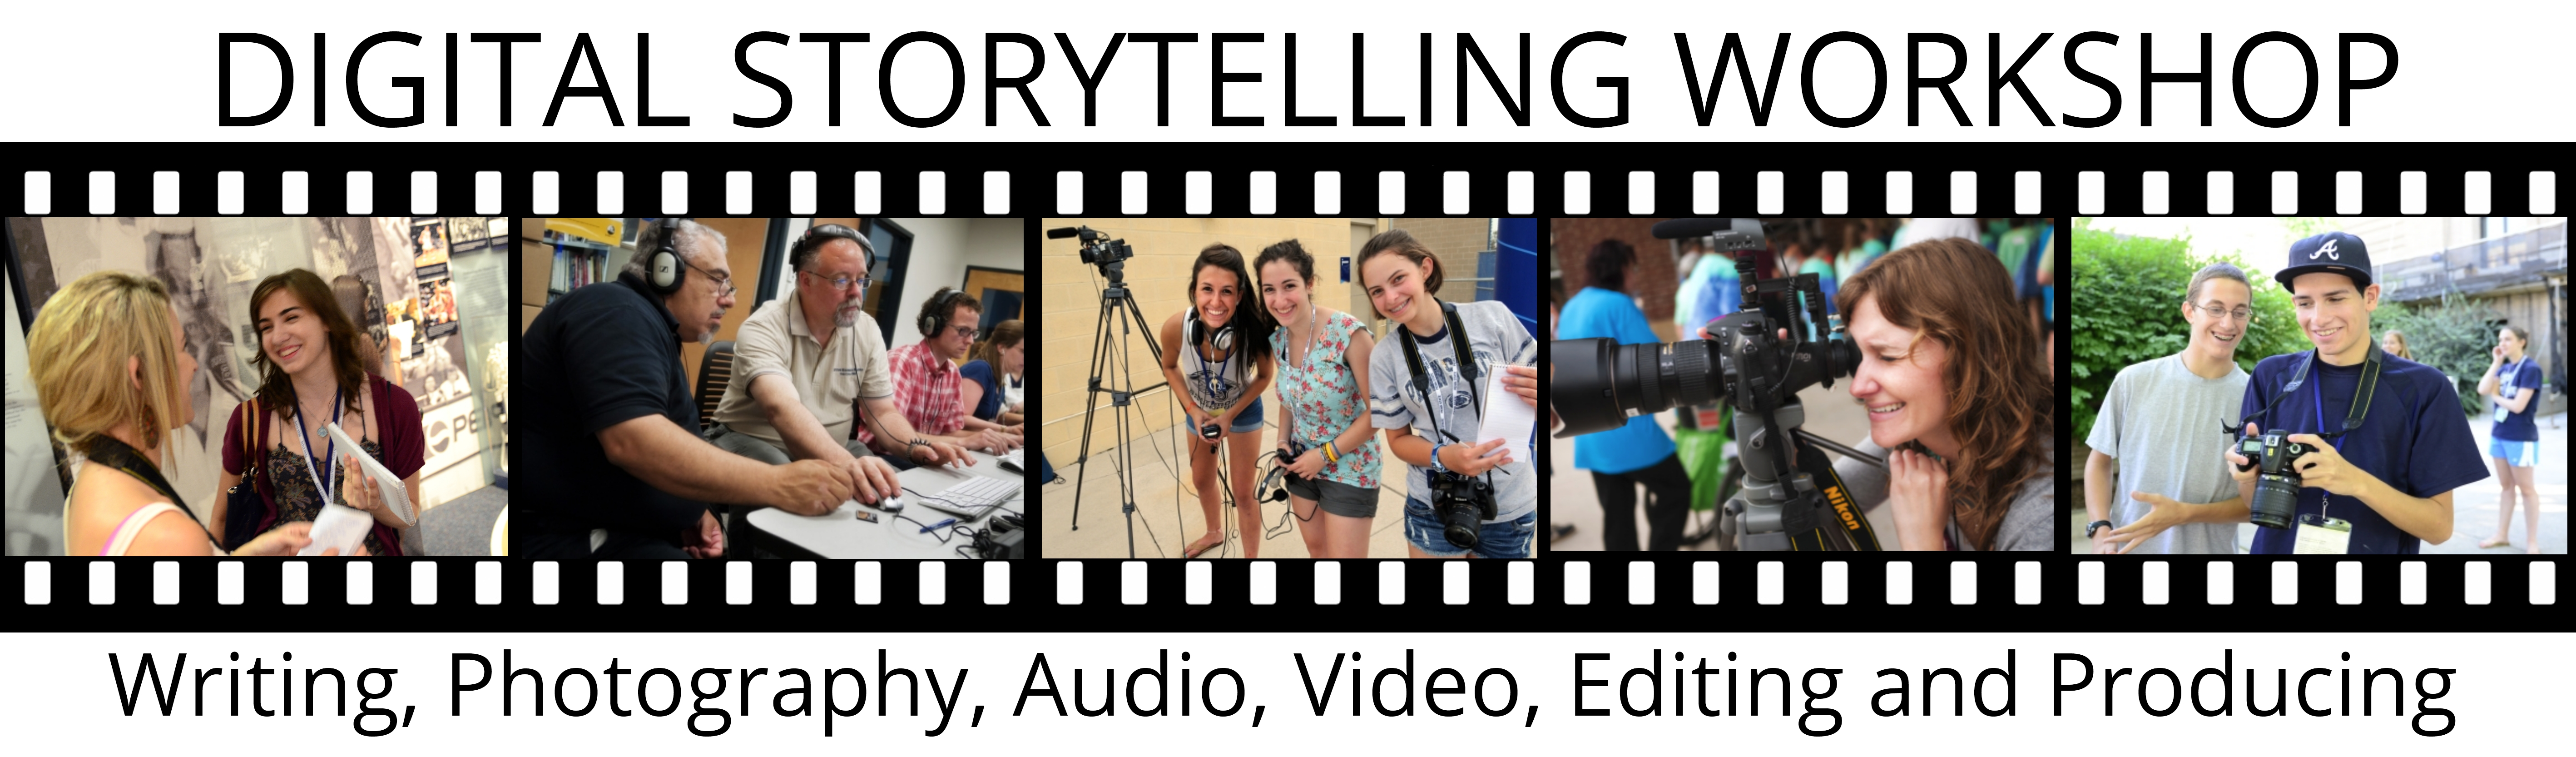 College of Communications Digital Storytelling Conference promos.